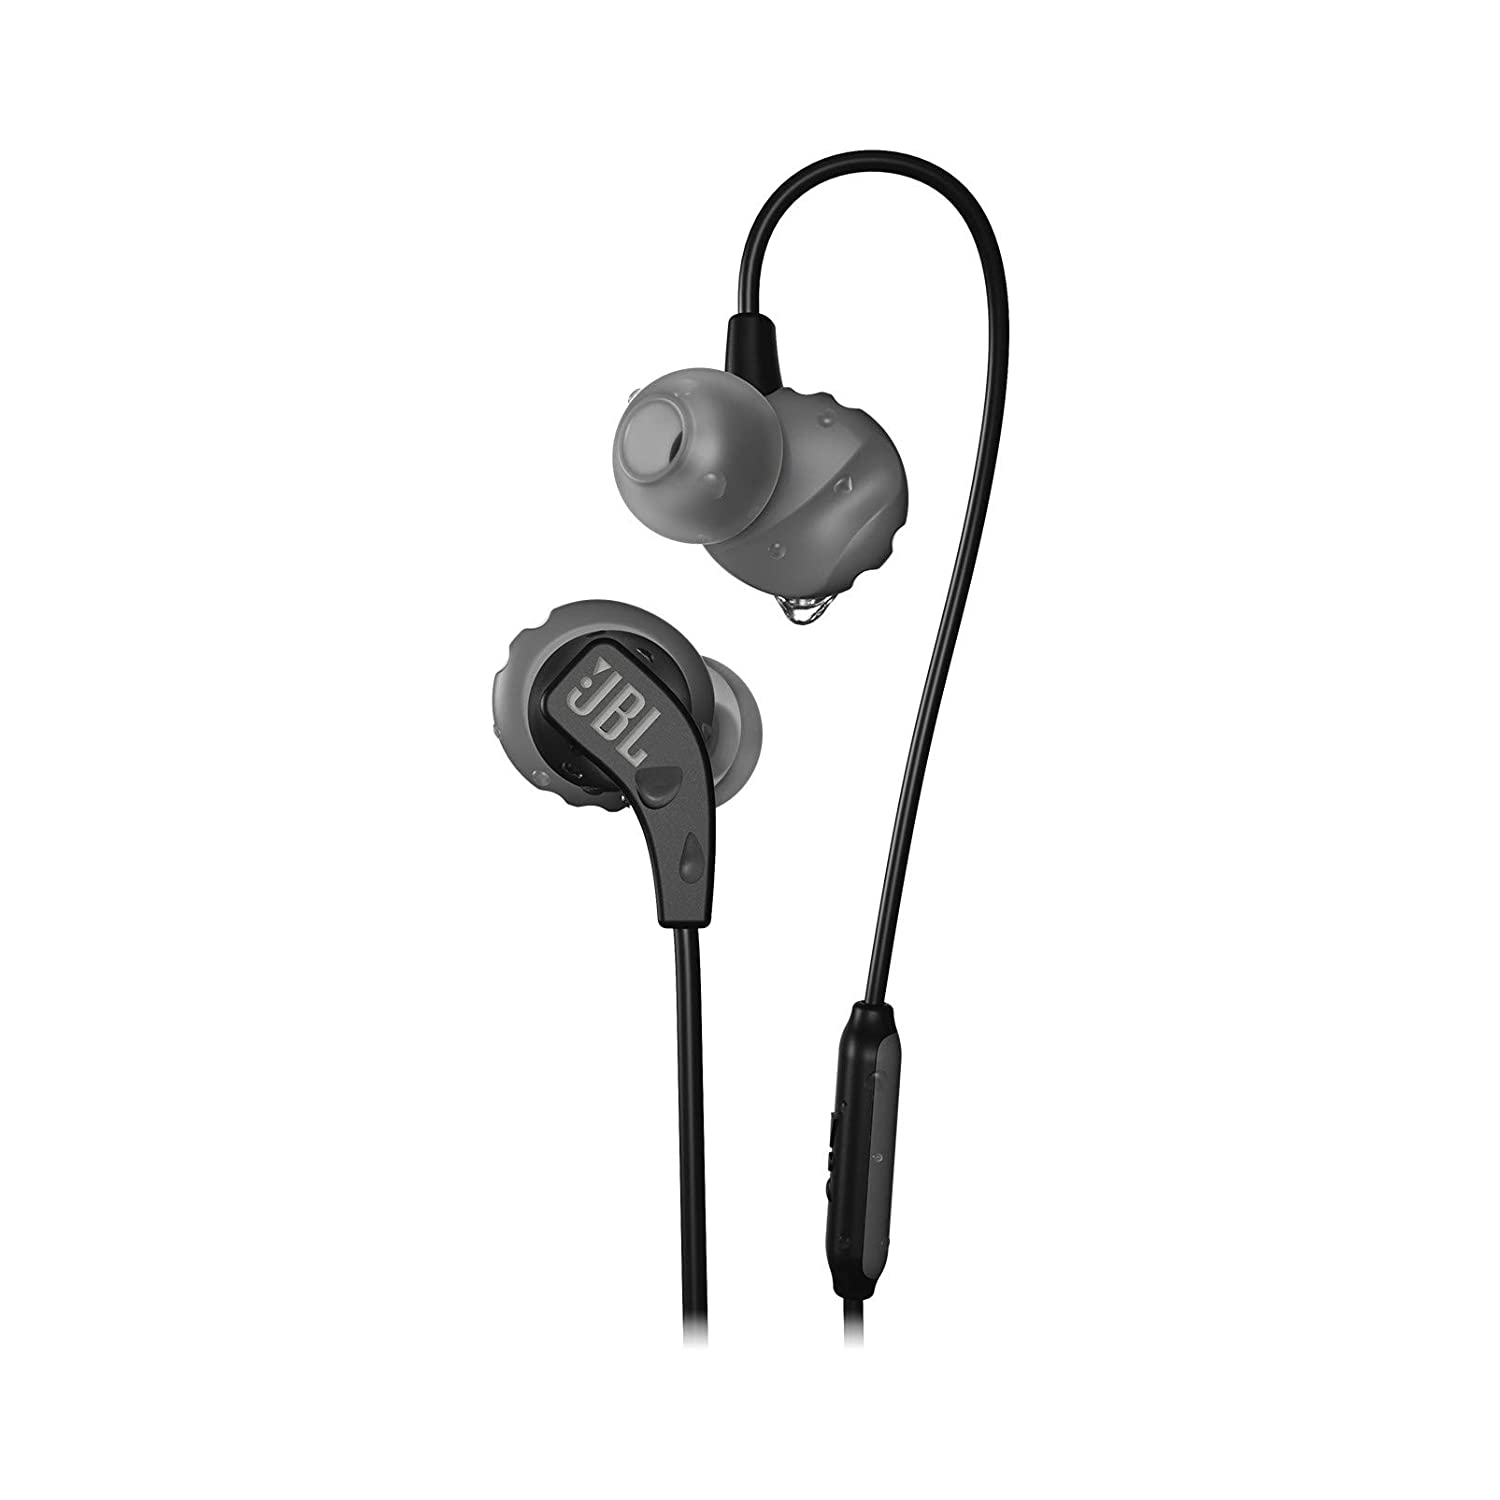 bca1f3a84b4 Amazon.com: JBL Endurance RUN Sweatproof Sports In-Ear Headphones with One- Button Remote and Microphone (Black): Home Audio & Theater